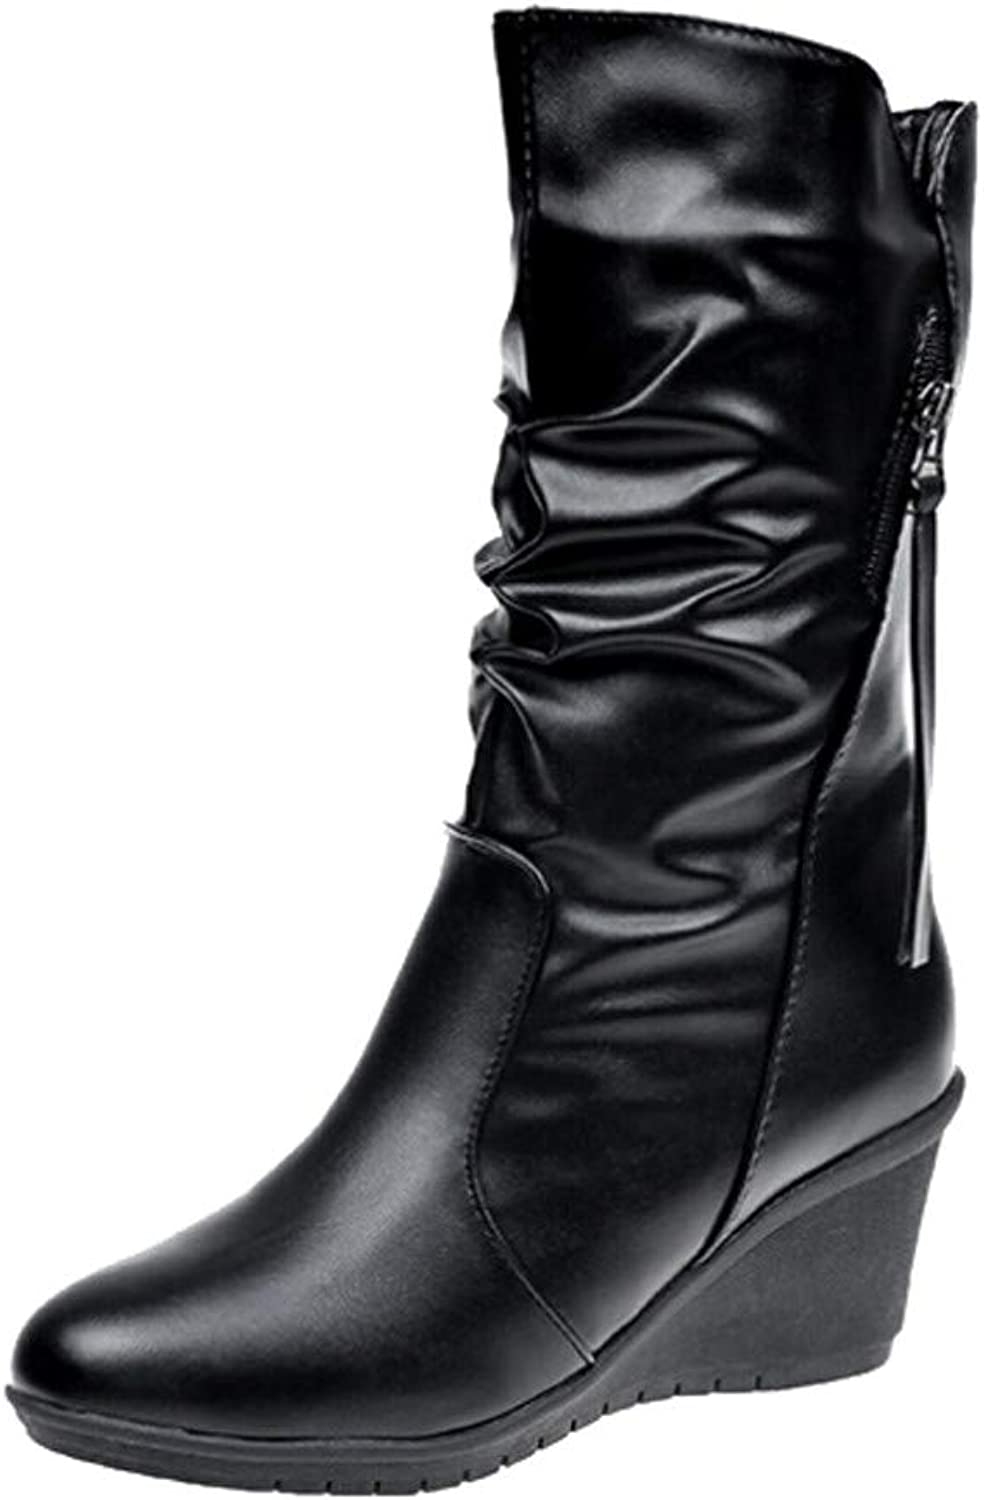 XoiuSyi Women's Leather Zipper Round Toe Pile shoes Wedges Snow Knee High Boot